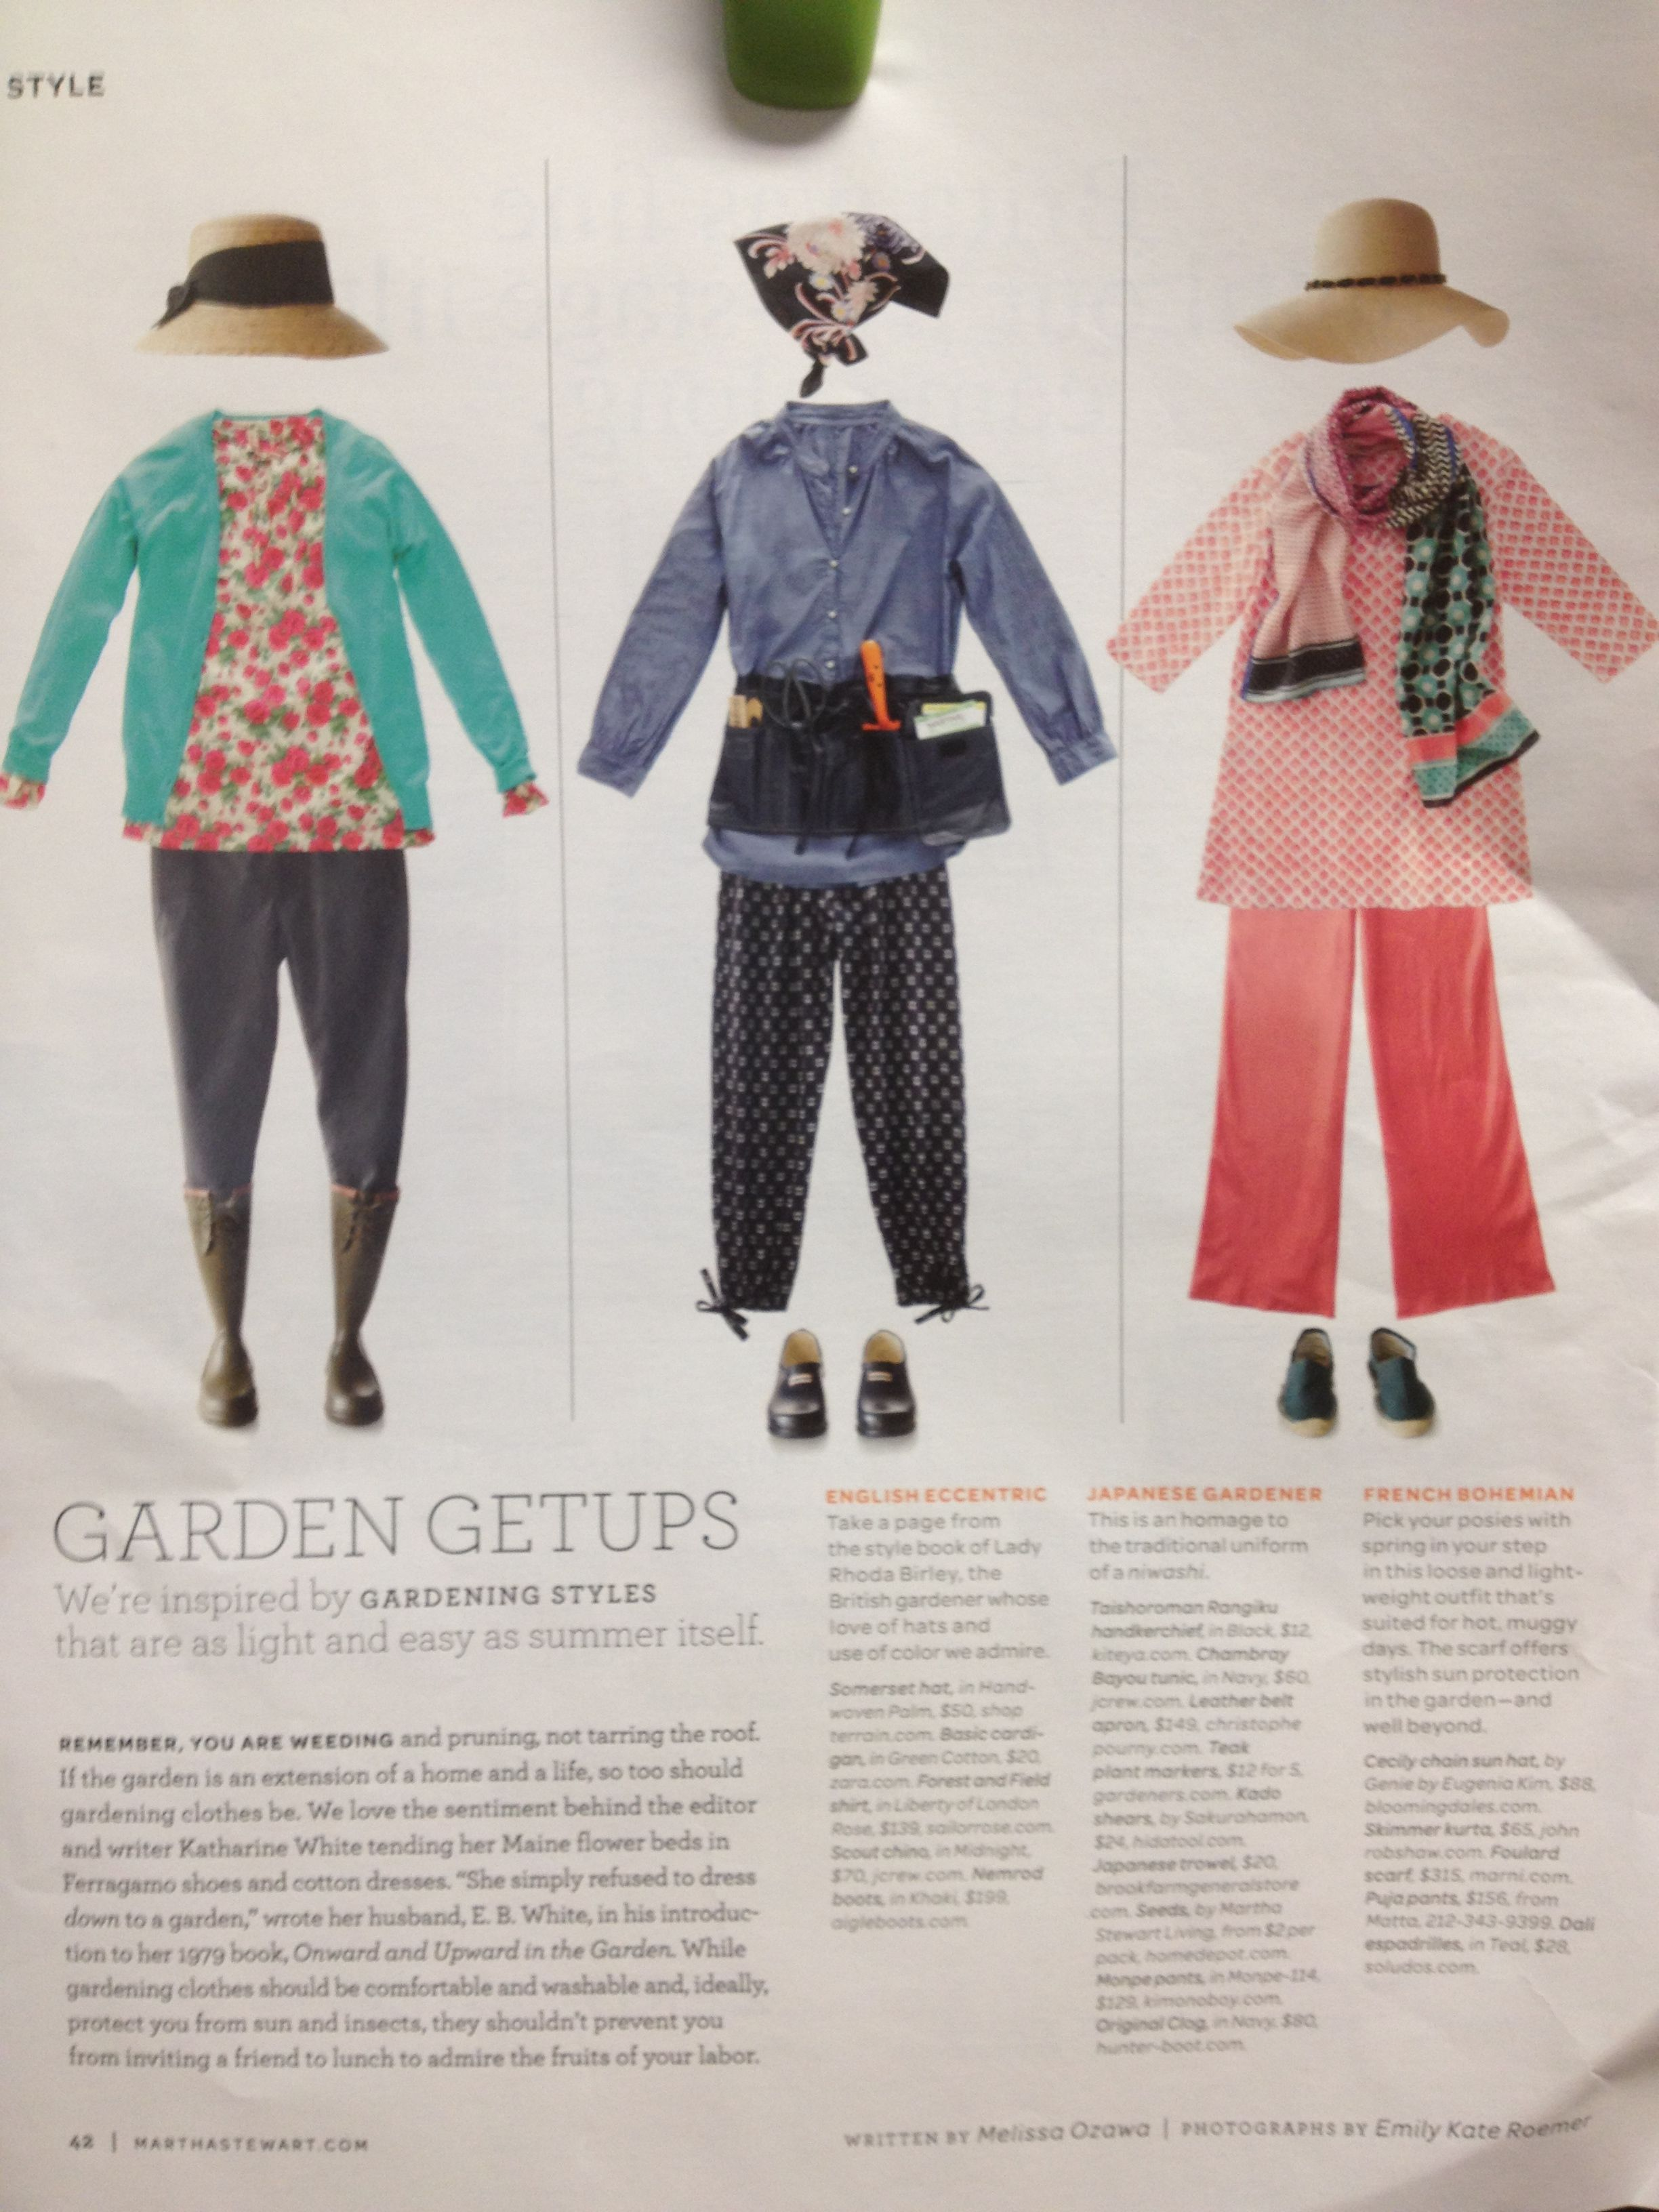 60deca518c57ace8f63293d375fab747 - Best Clothes To Wear For Gardening